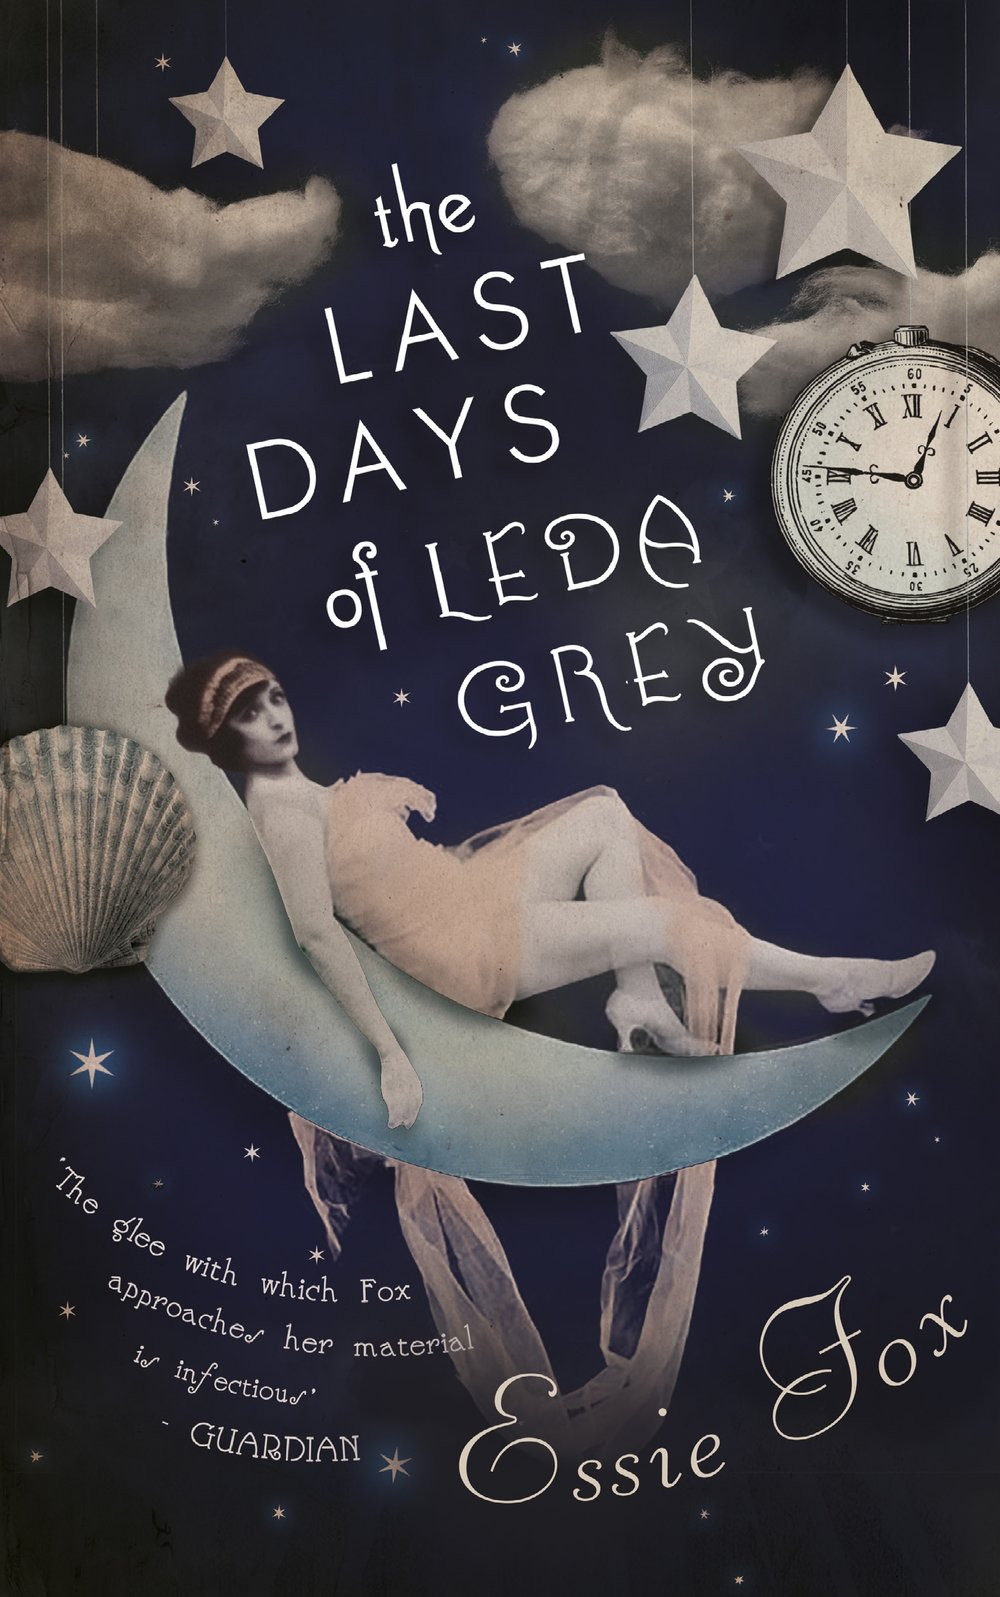 THE LAST DAYS OF LEDA GREY Literary Fiction, 288 pages Orion, Nov 2016 A bewitching novel about an enigmatic silent film actress, and the volatile love affair that left her a recluse for over half a century.